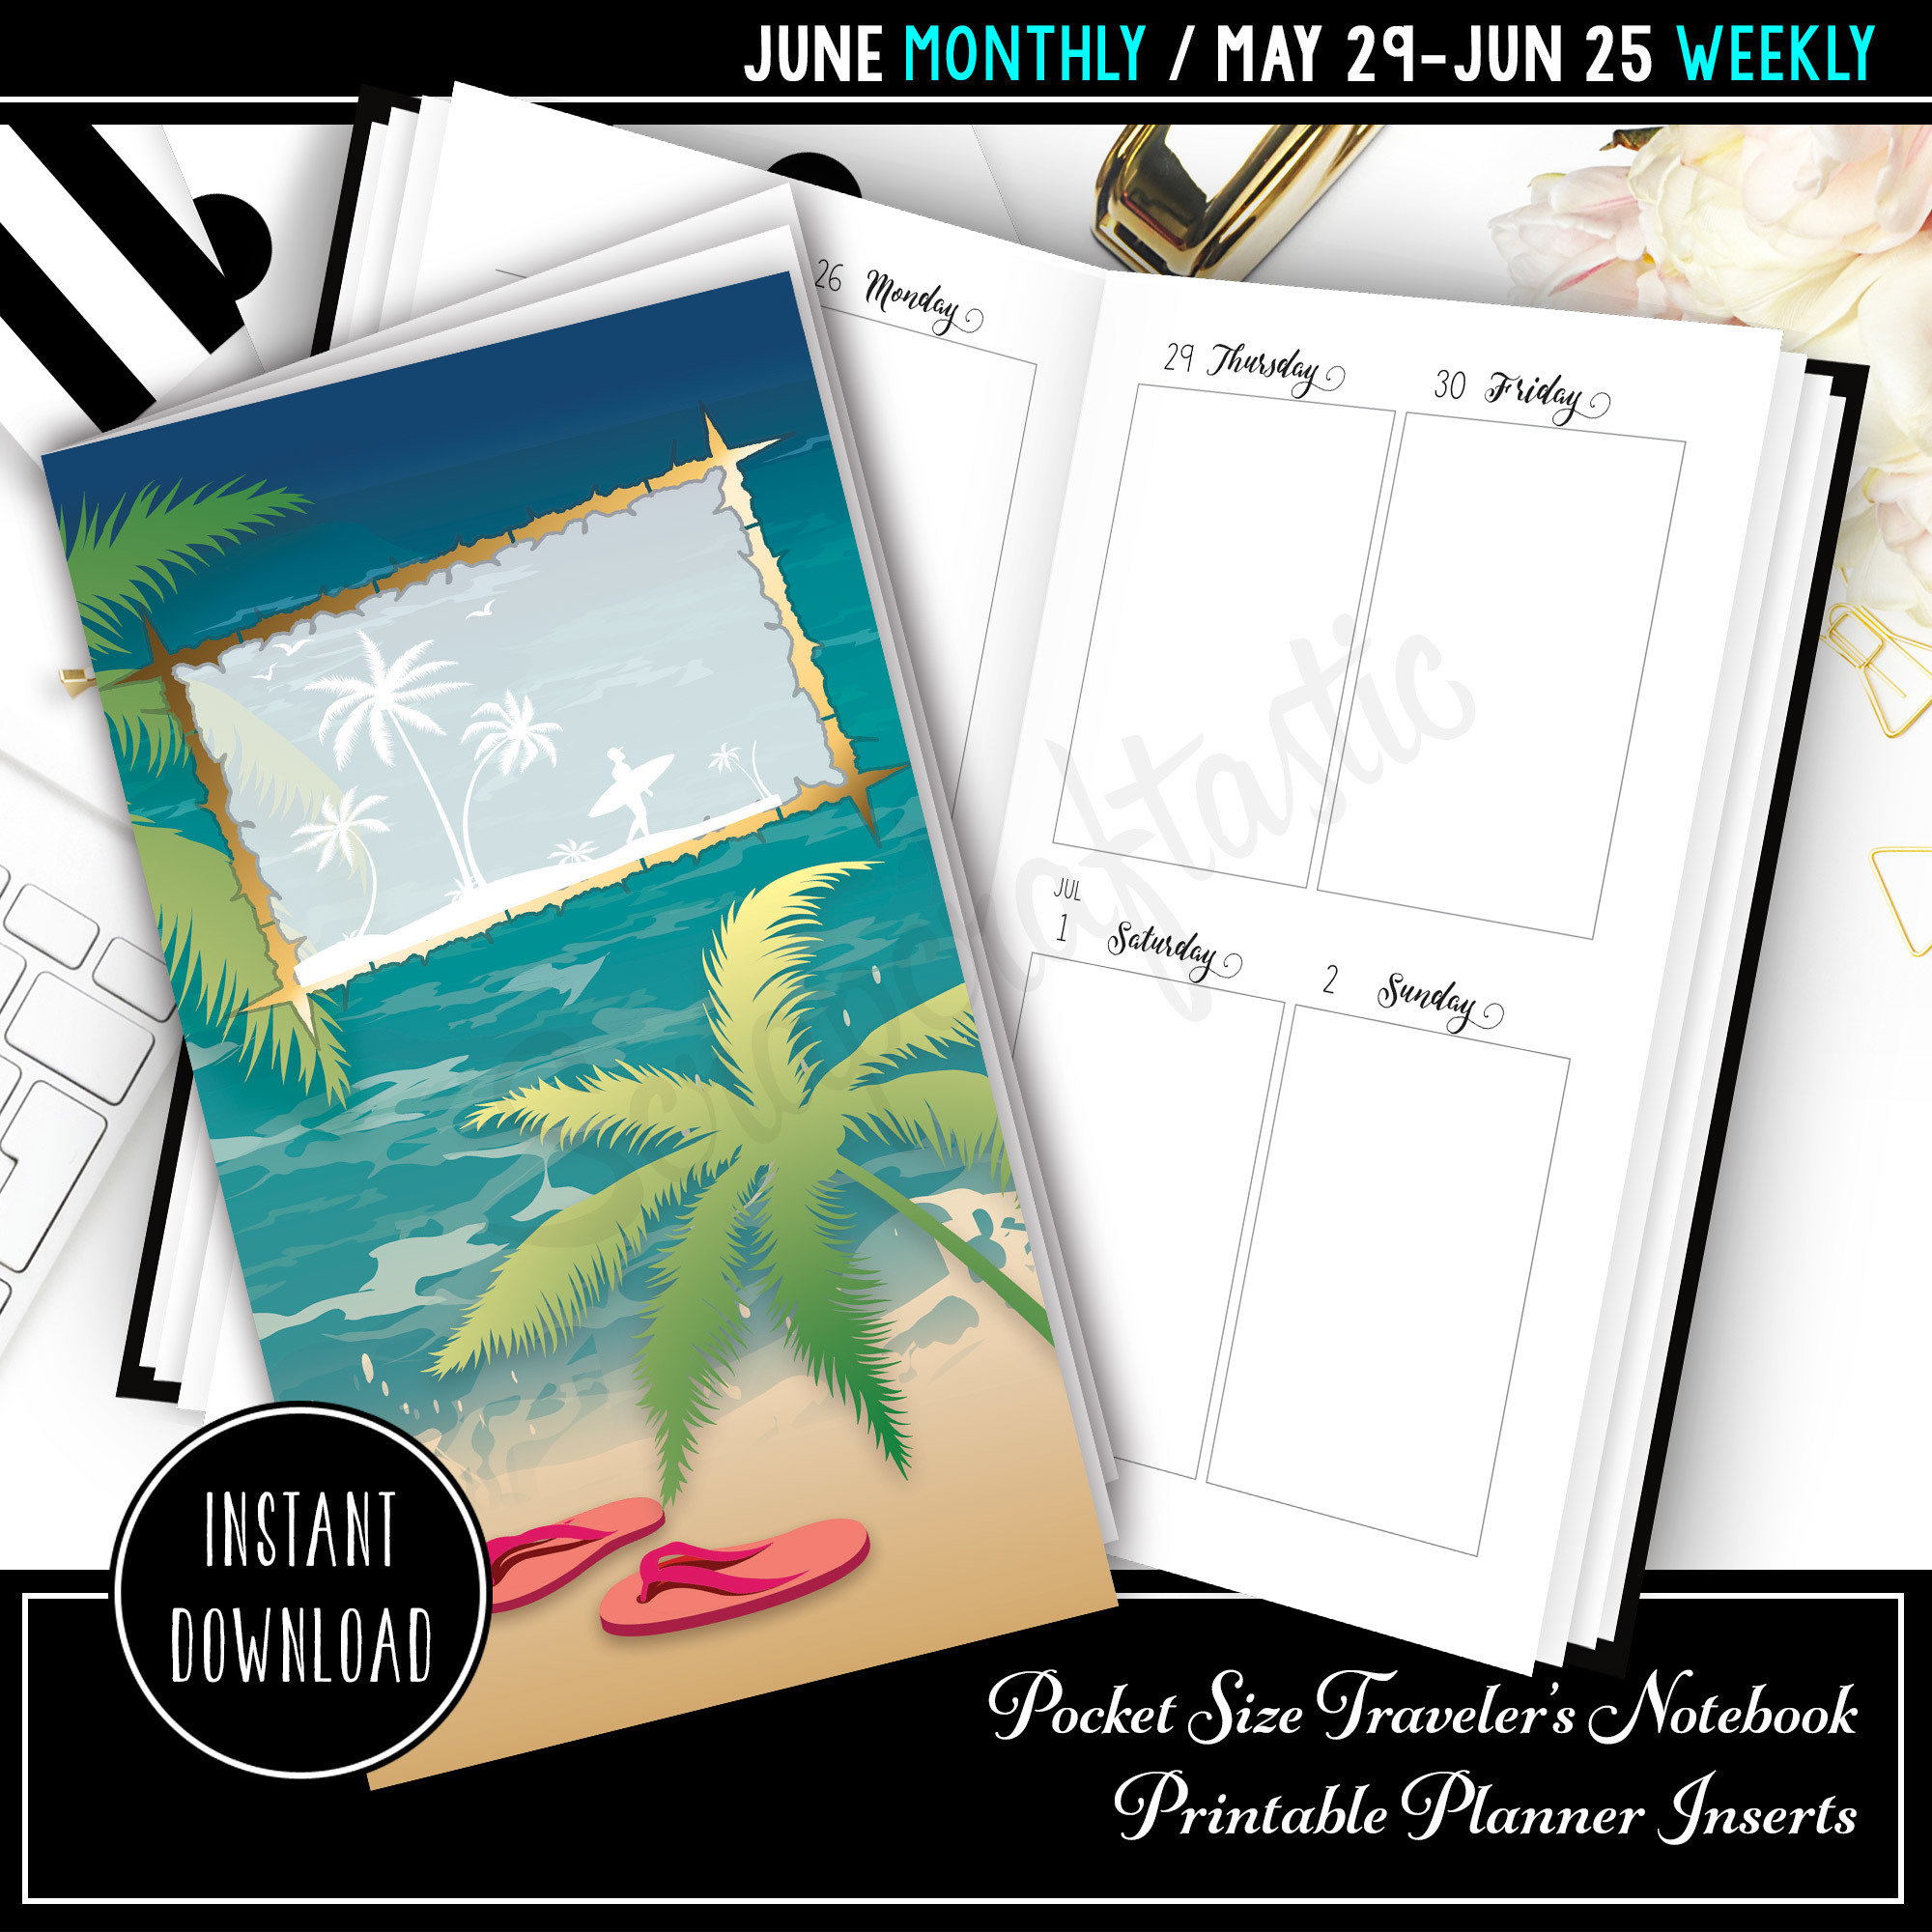 June 2017 Pocket Size Traveler's Notebook Printable Planner Inserts 10000